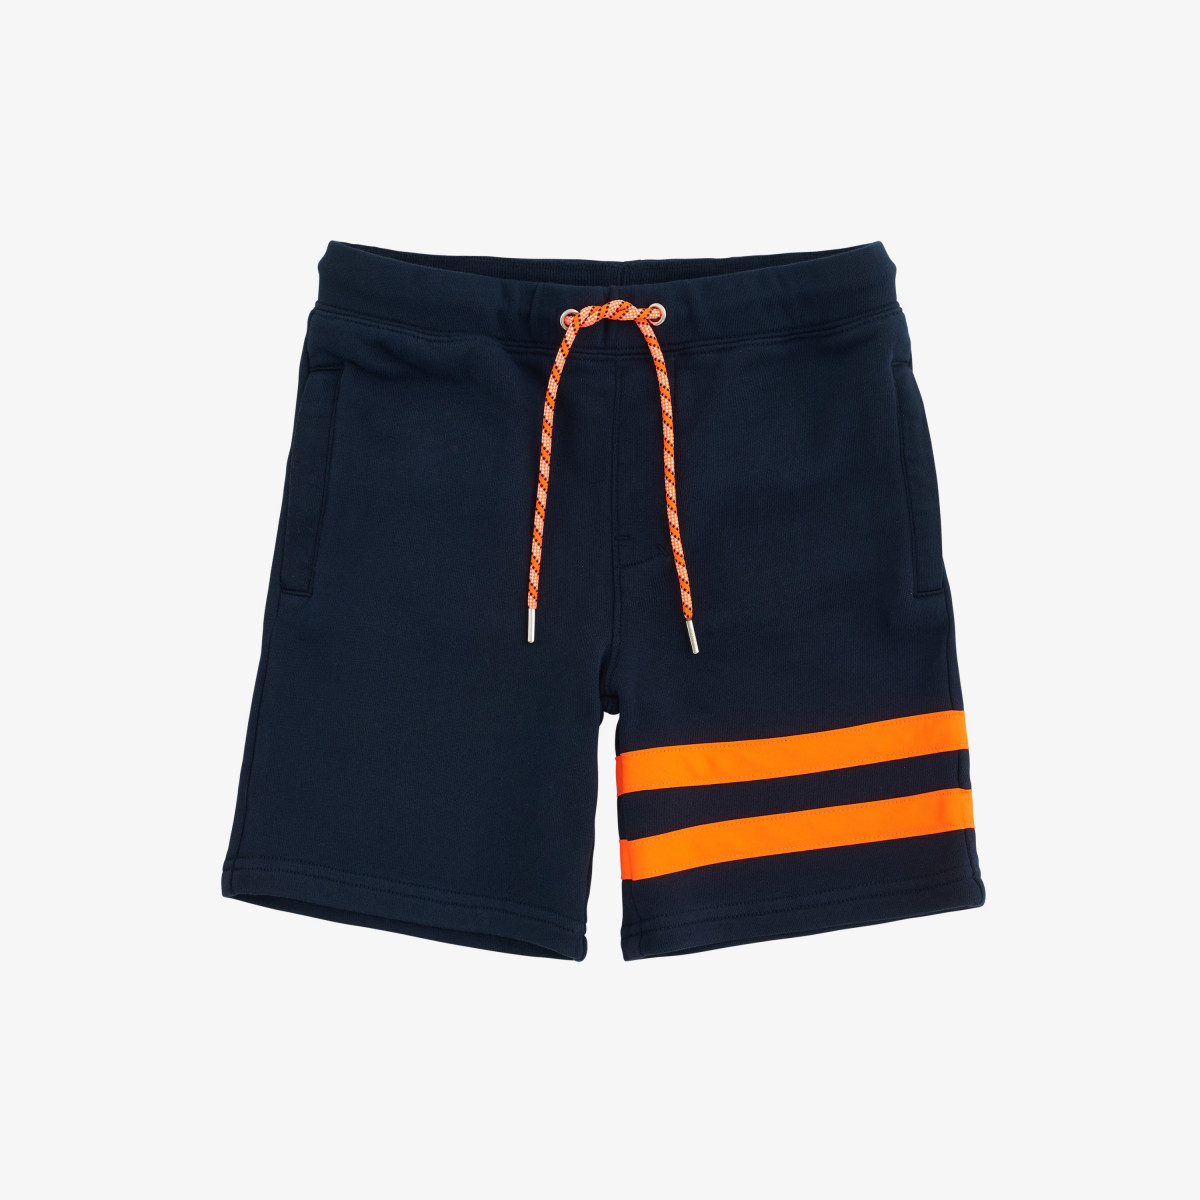 PANT SHORT FLUO COTT. FL. NAVY BLUE